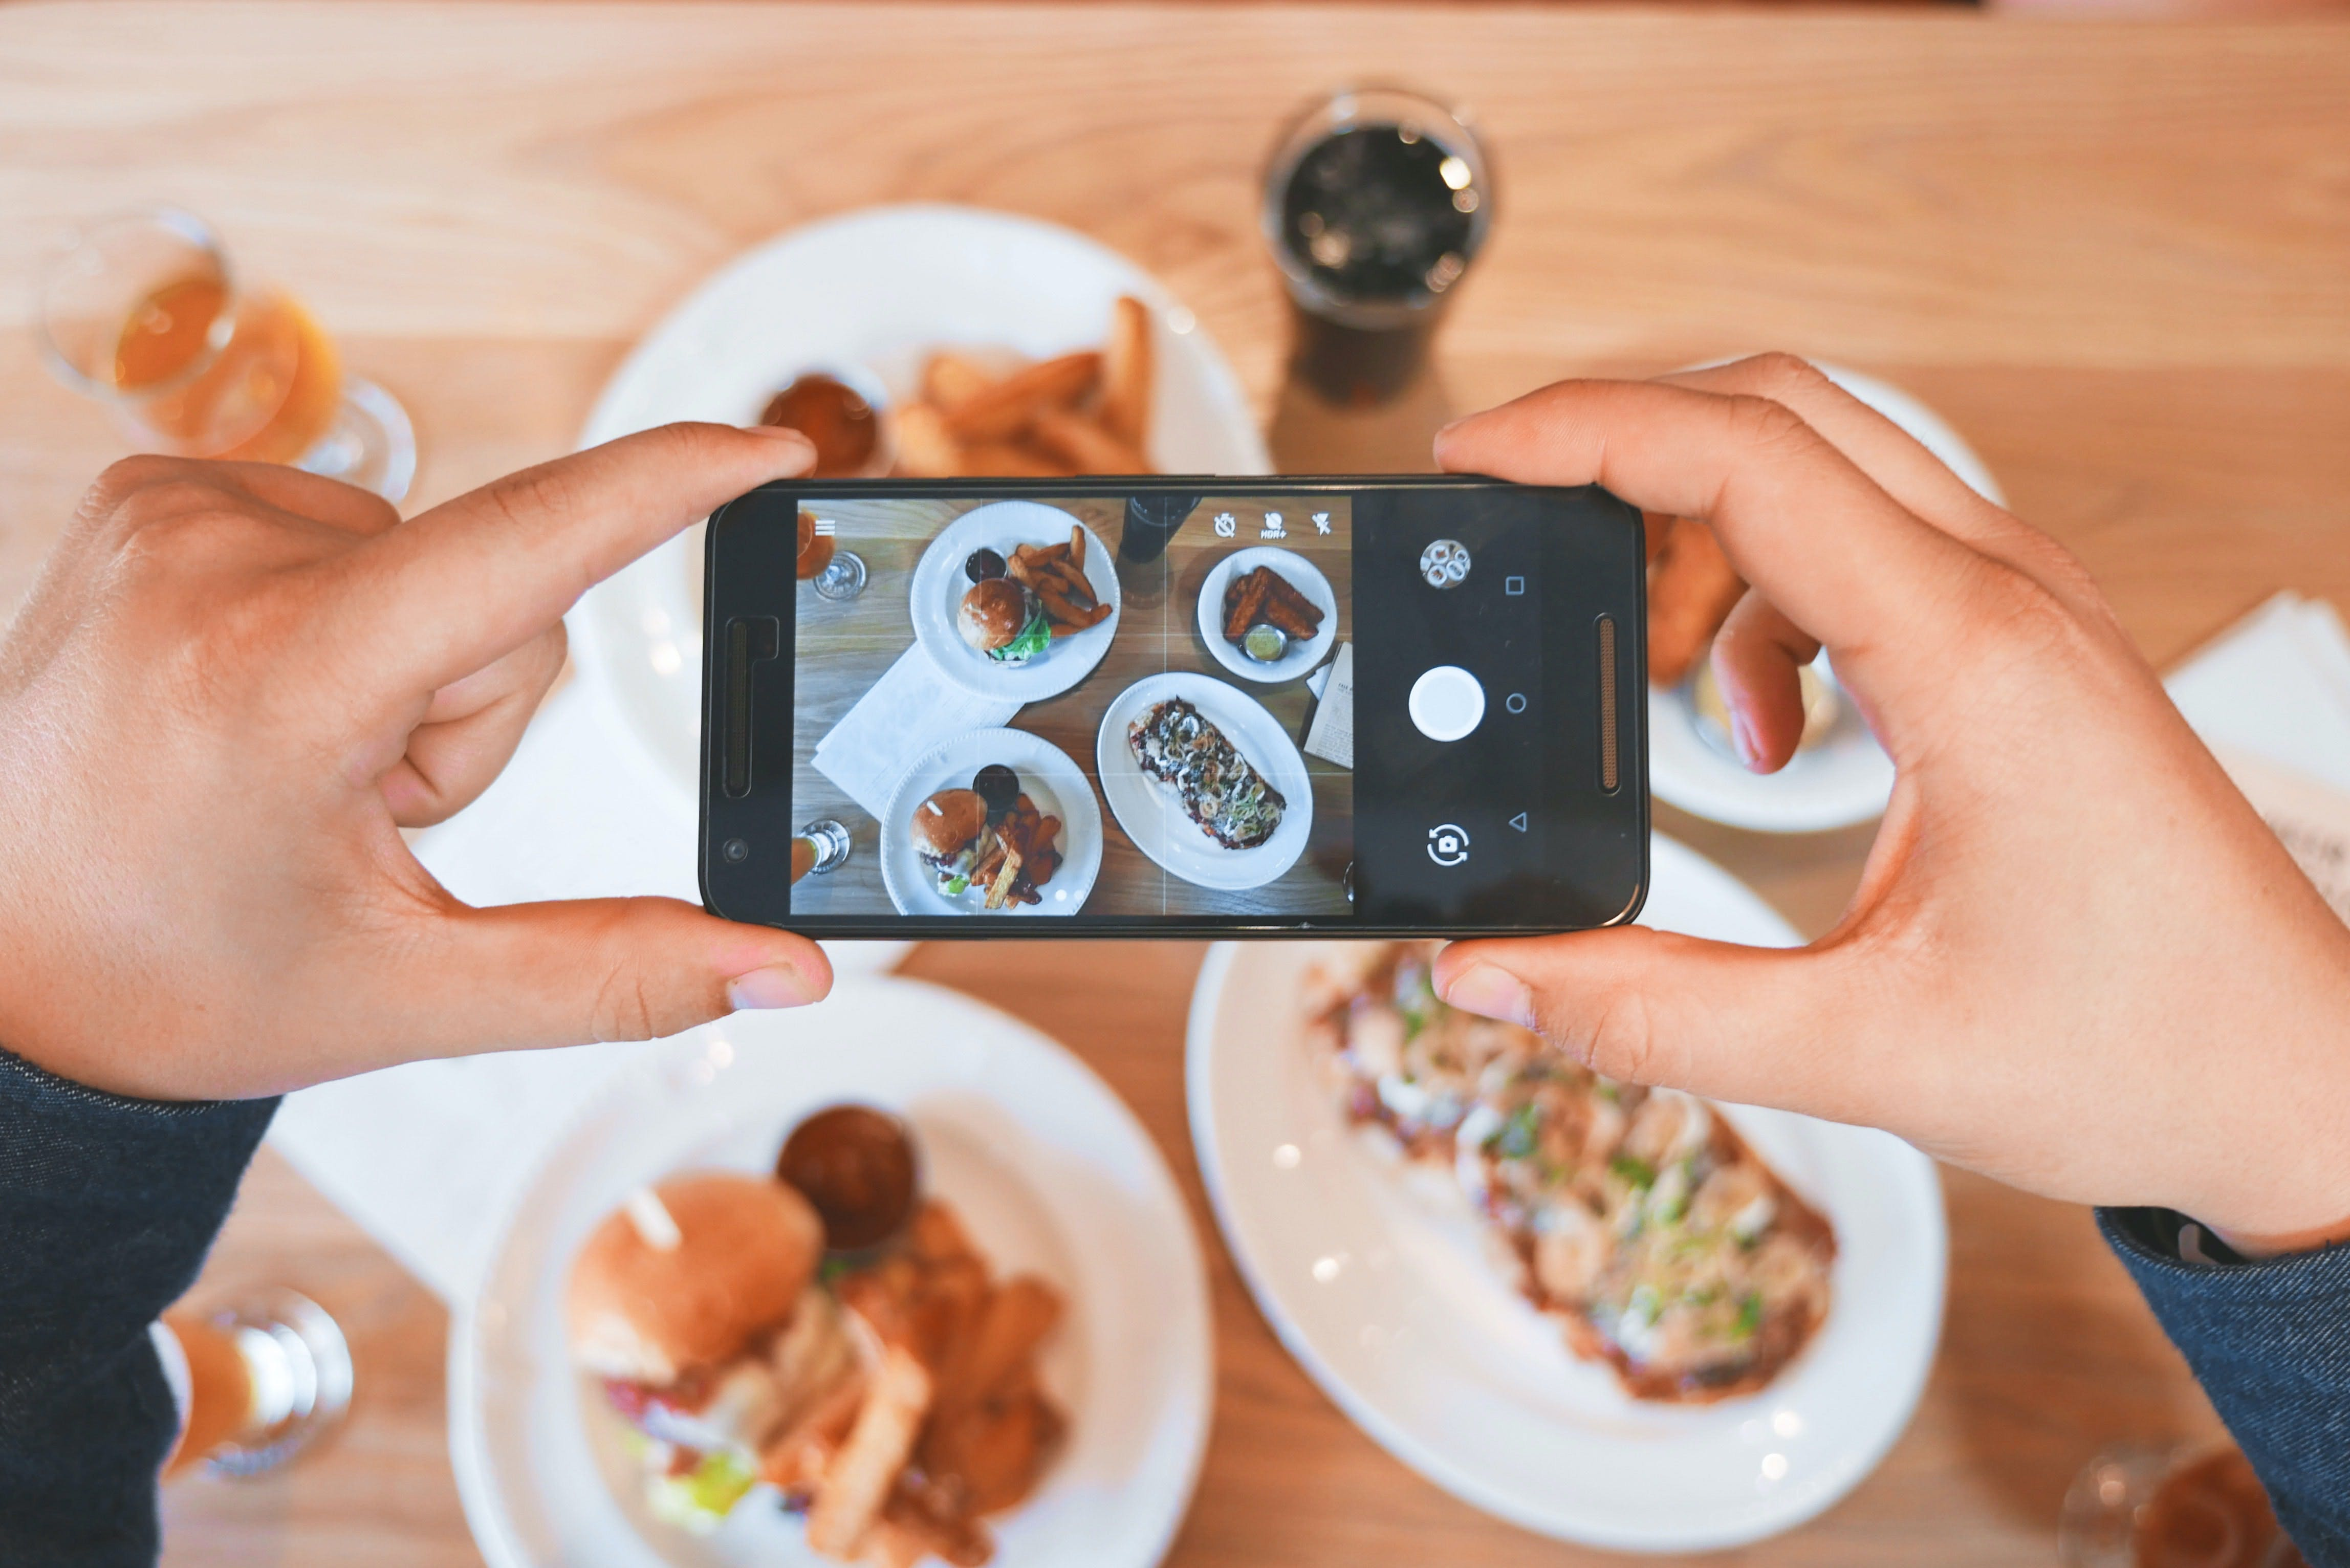 person holding a phone from above and taking a photo of food on the table